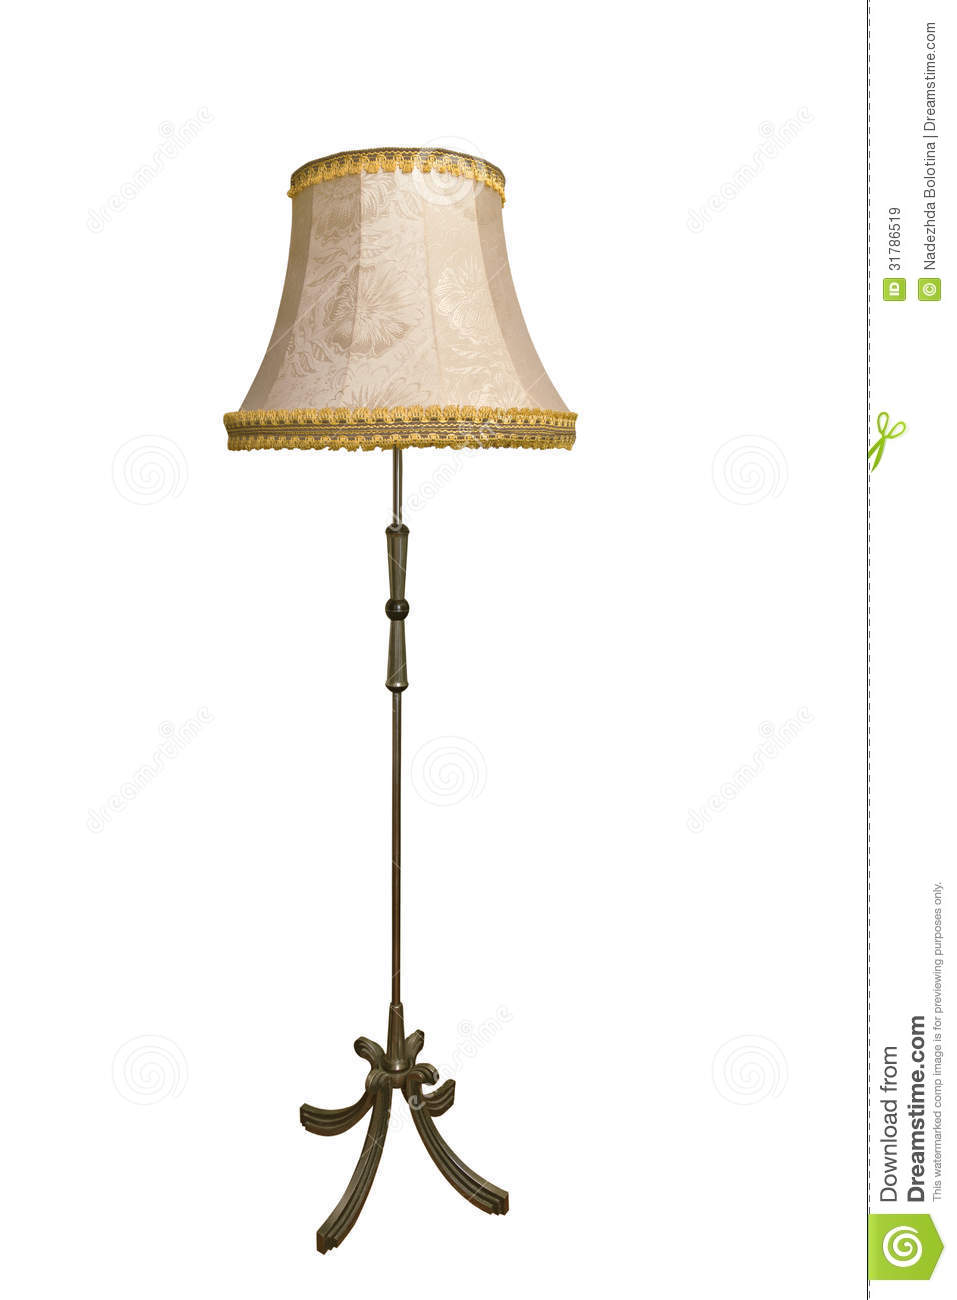 Floor Lamp Clipart Black And White | Clipart Panda - Free Clipart Images